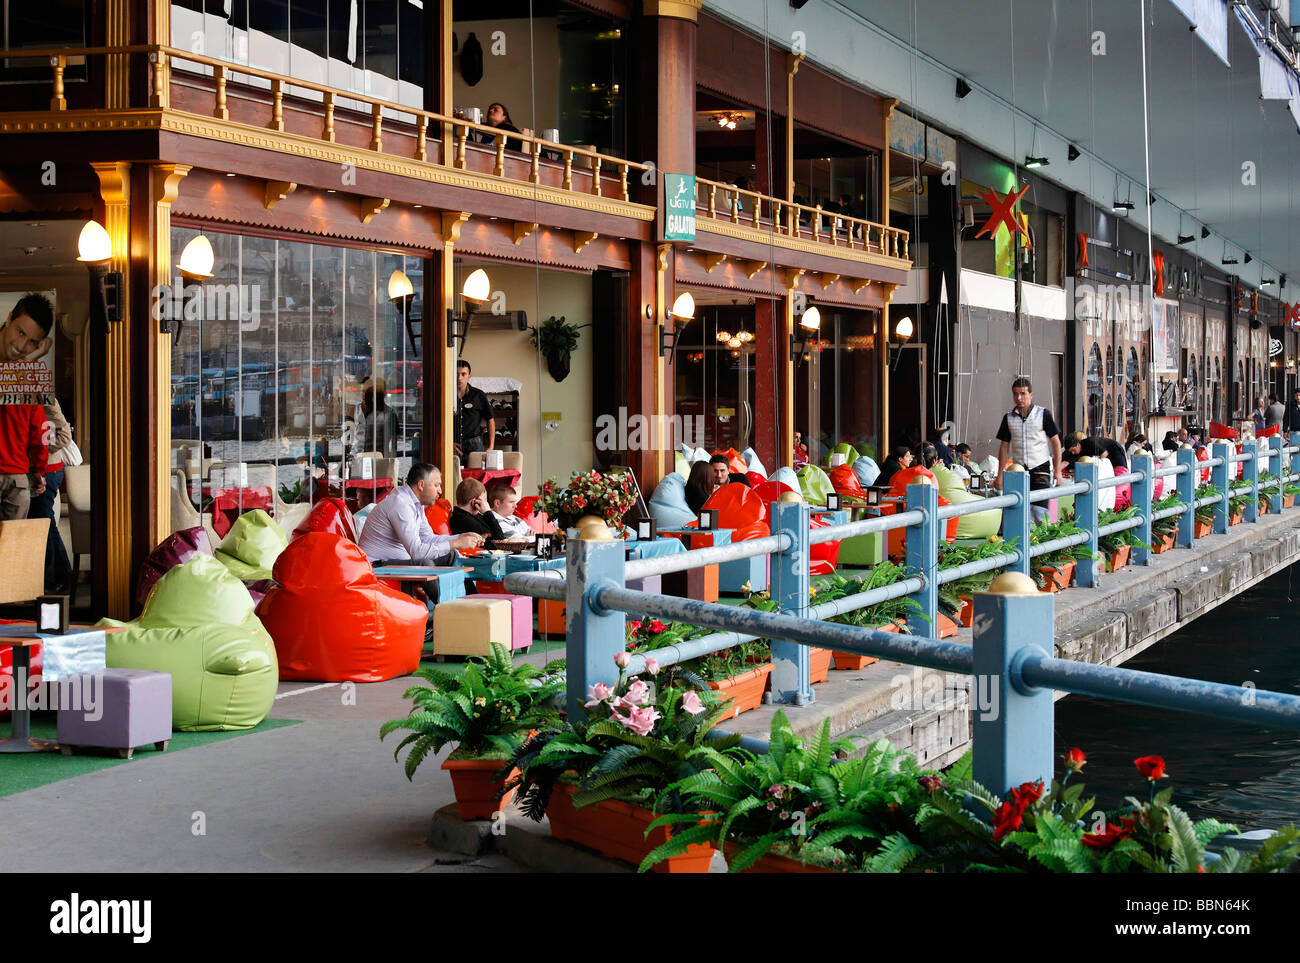 Basement of the Galata bridge, cafe with colorful beanbag outdoor seating, Istanbul, Turkey - Stock Image